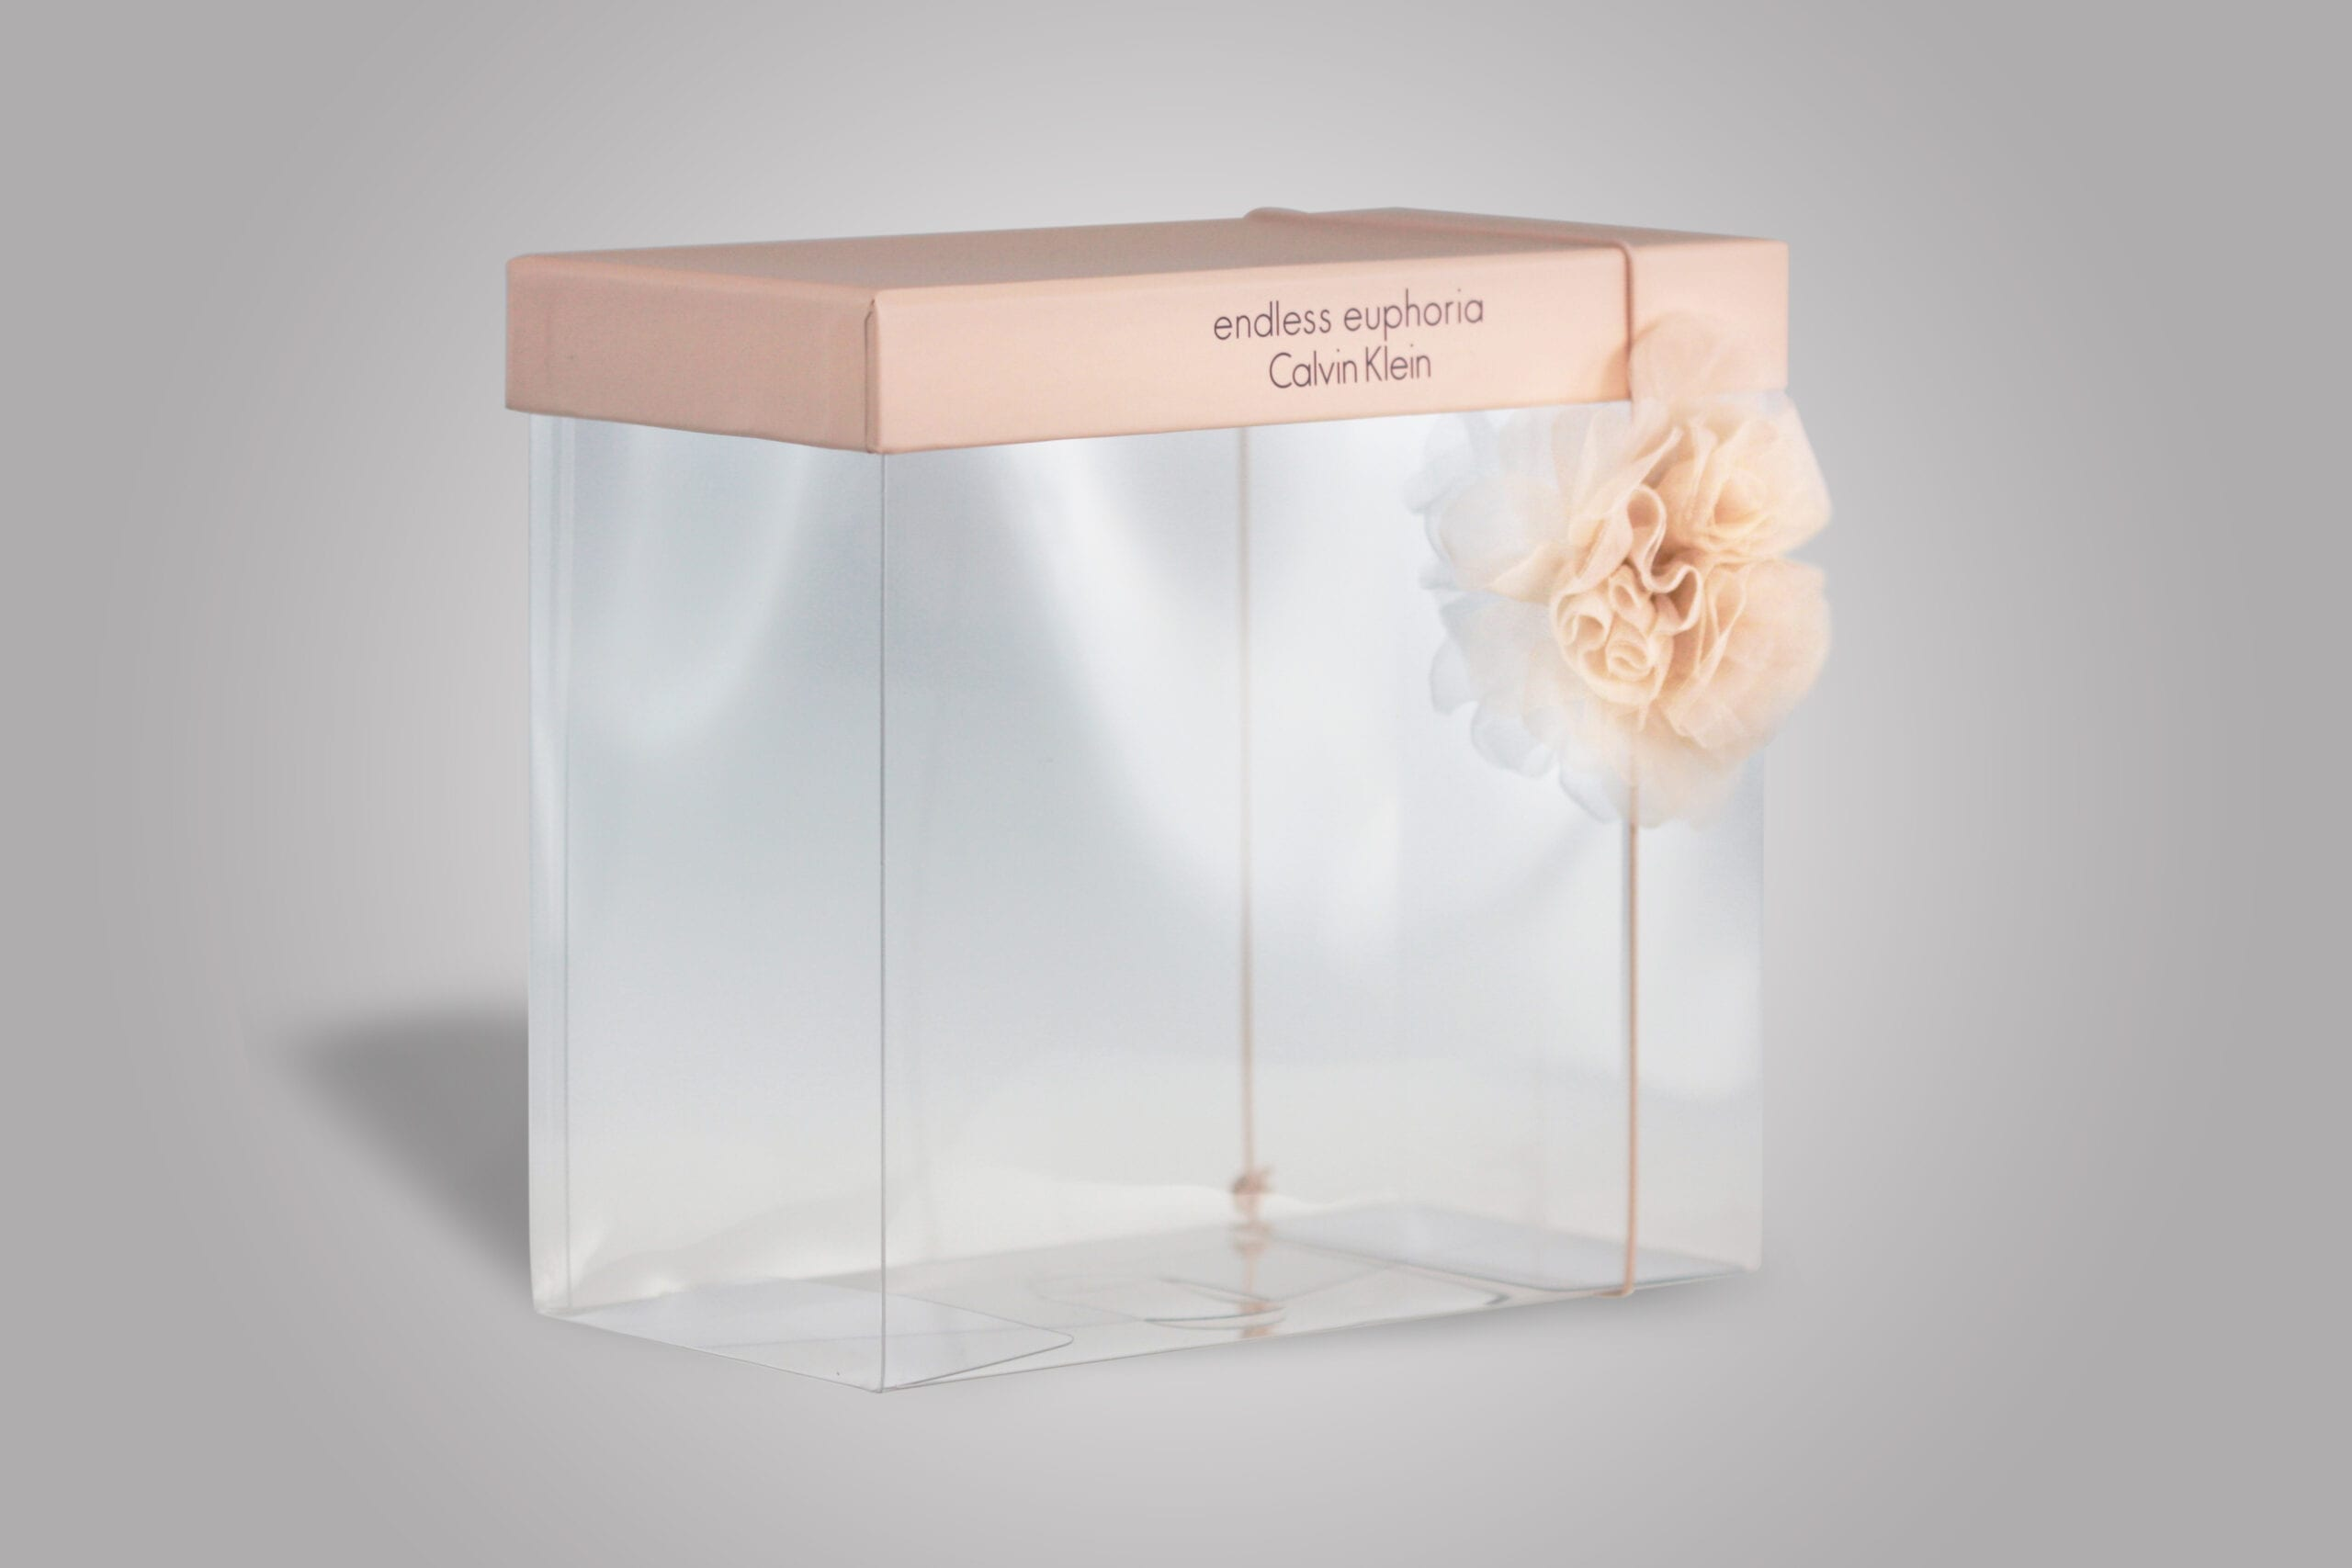 We work closely with you to ensure that your product gets the custom clear packaging it deserves, and this custom designed clear box is no exception.